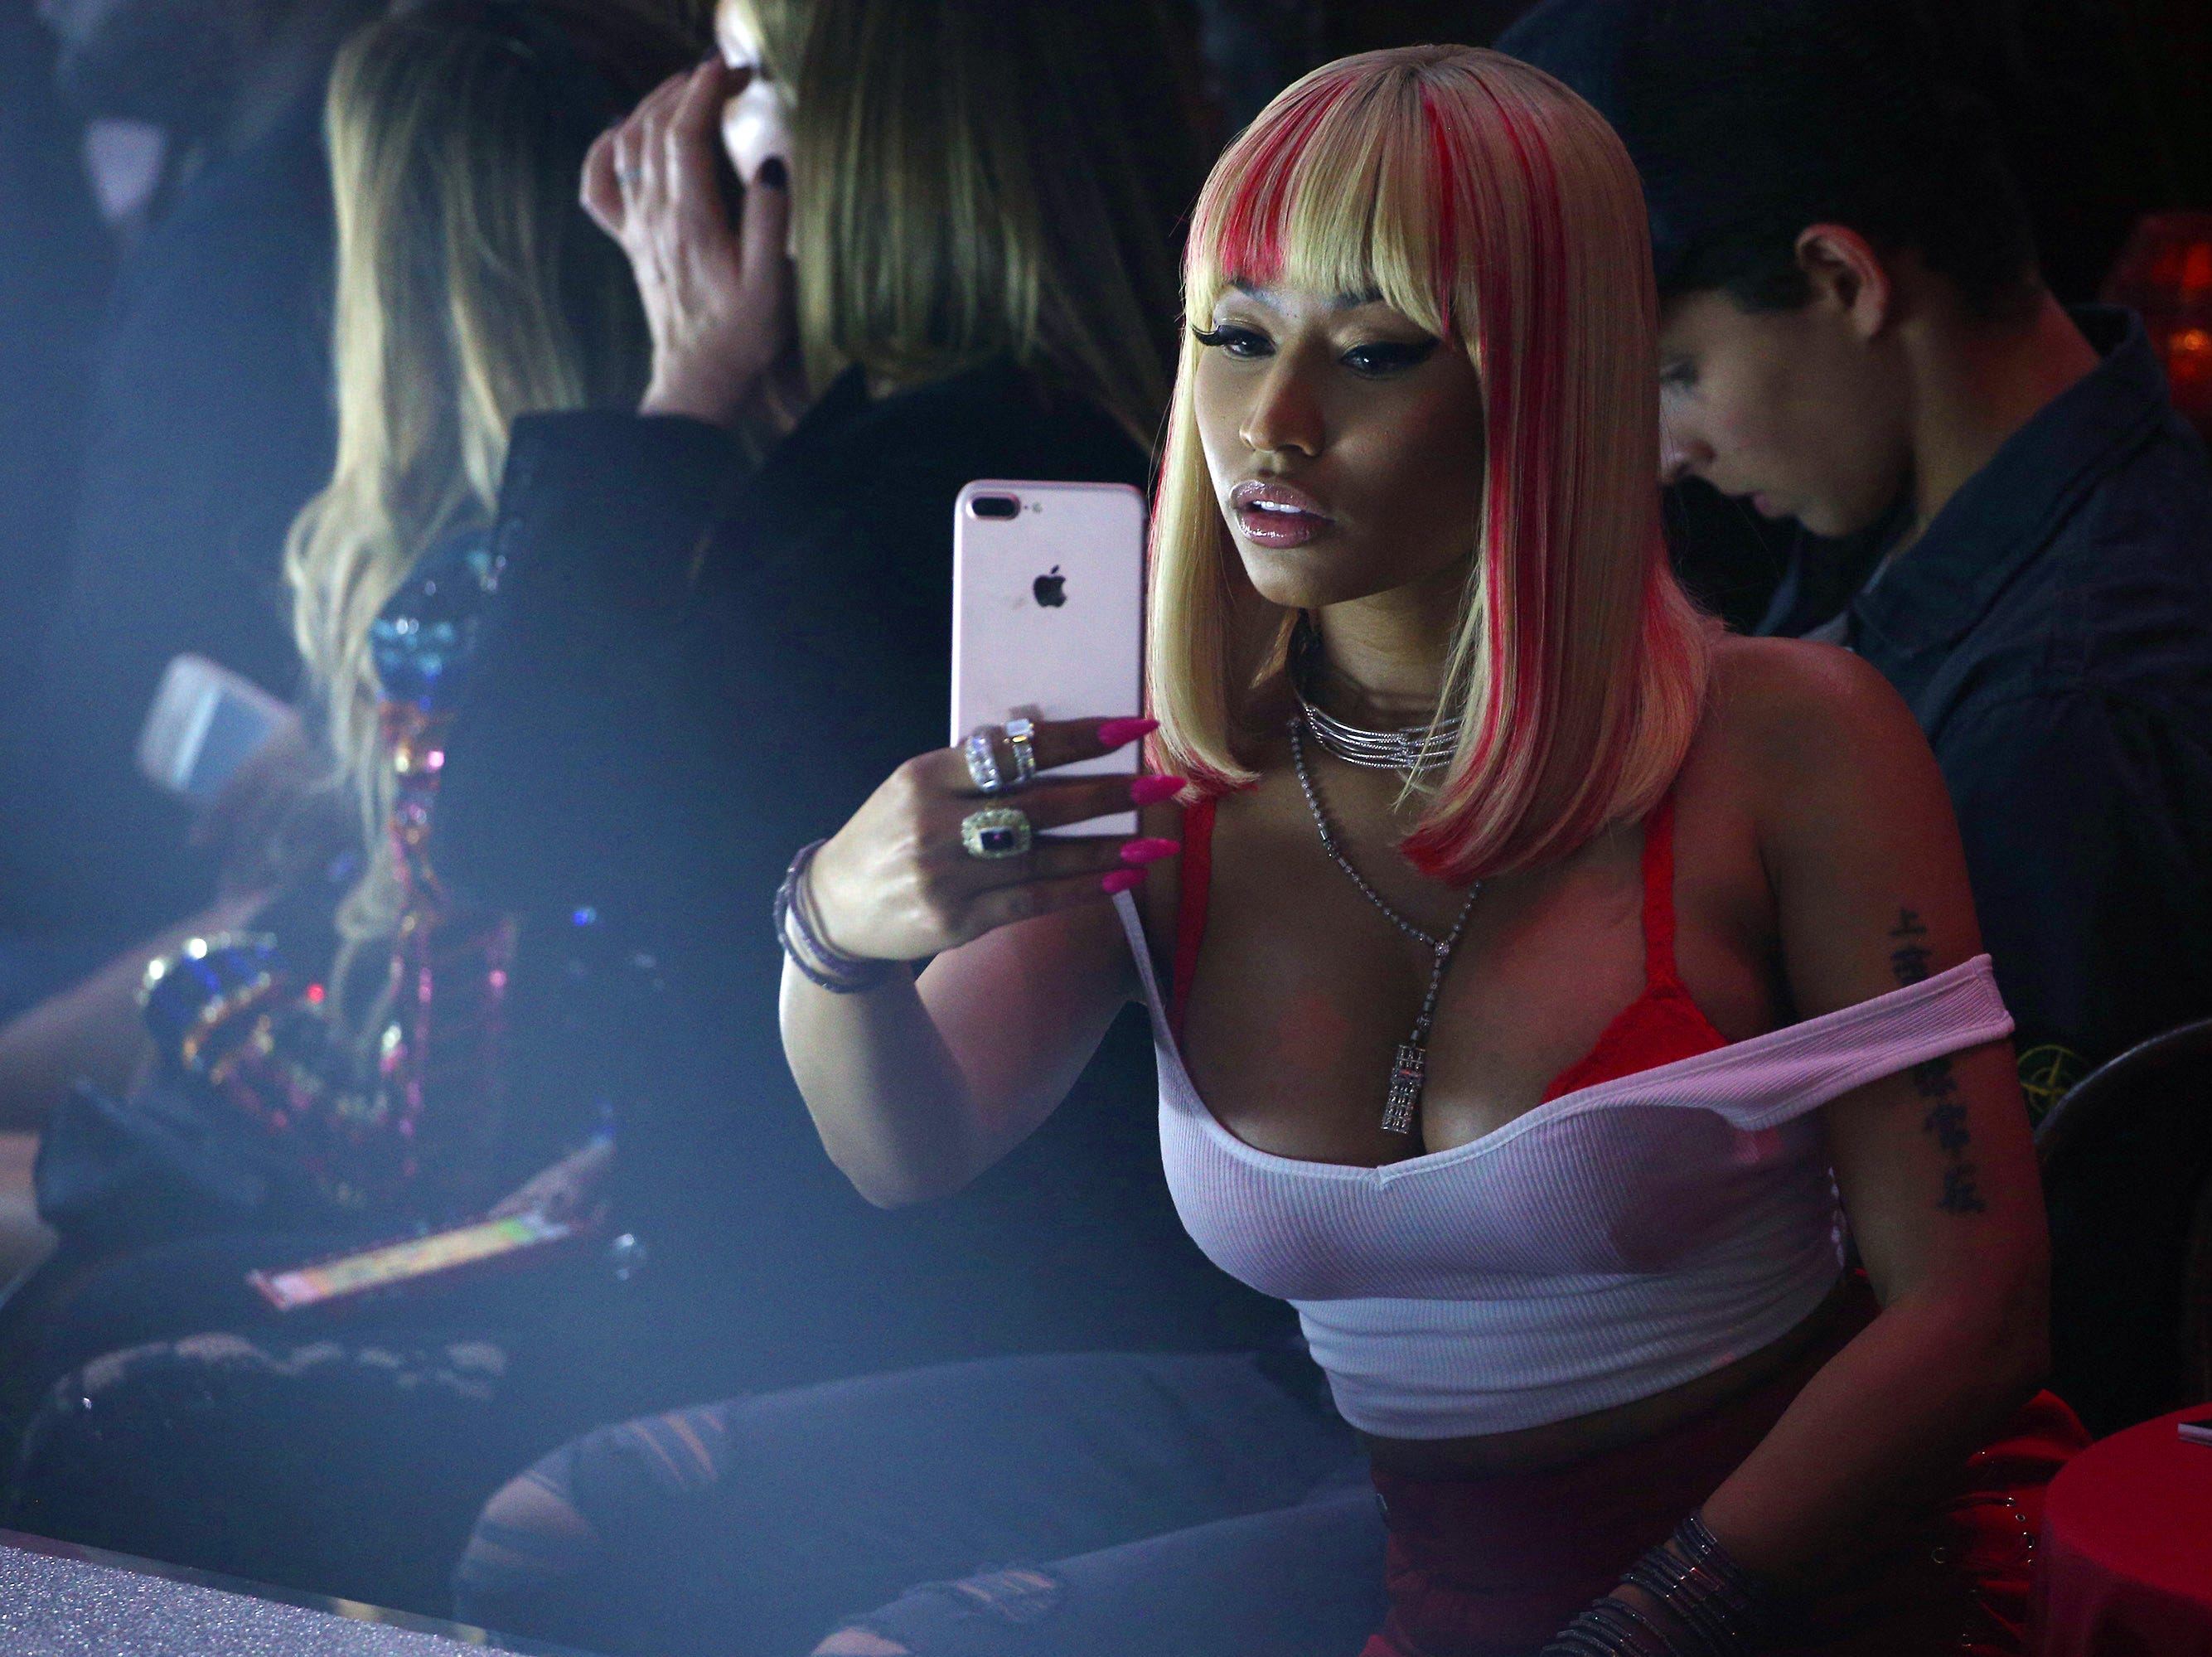 NEW YORK, NY - SEPTEMBER 09:  Nicki Minaj takes selphies for social media at the Philipp Plein Spring/Summer 2018 collection fashion show during New York fashion week on September 9, 2017 in New York City.  (Photo by Edward James/WireImage) ORG XMIT: 775032989 ORIG FILE ID: 845140558